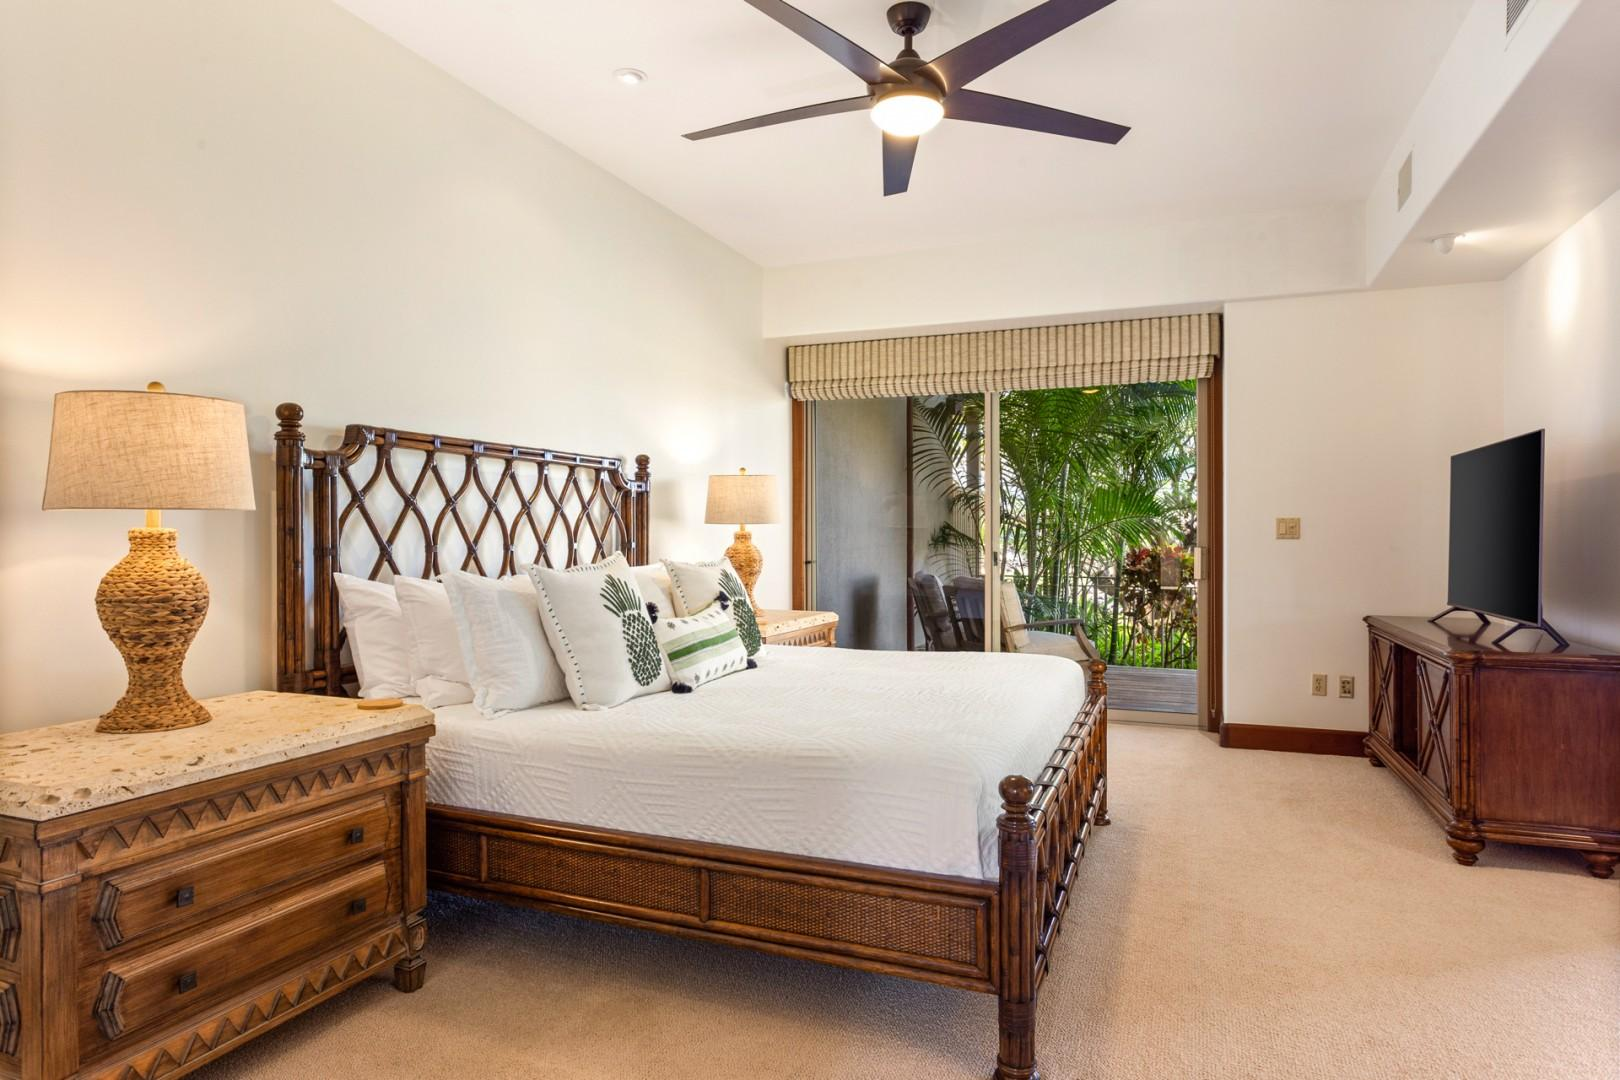 Master suite with king sized bed, lower lanai access, flatscreen television and ensuite bath.